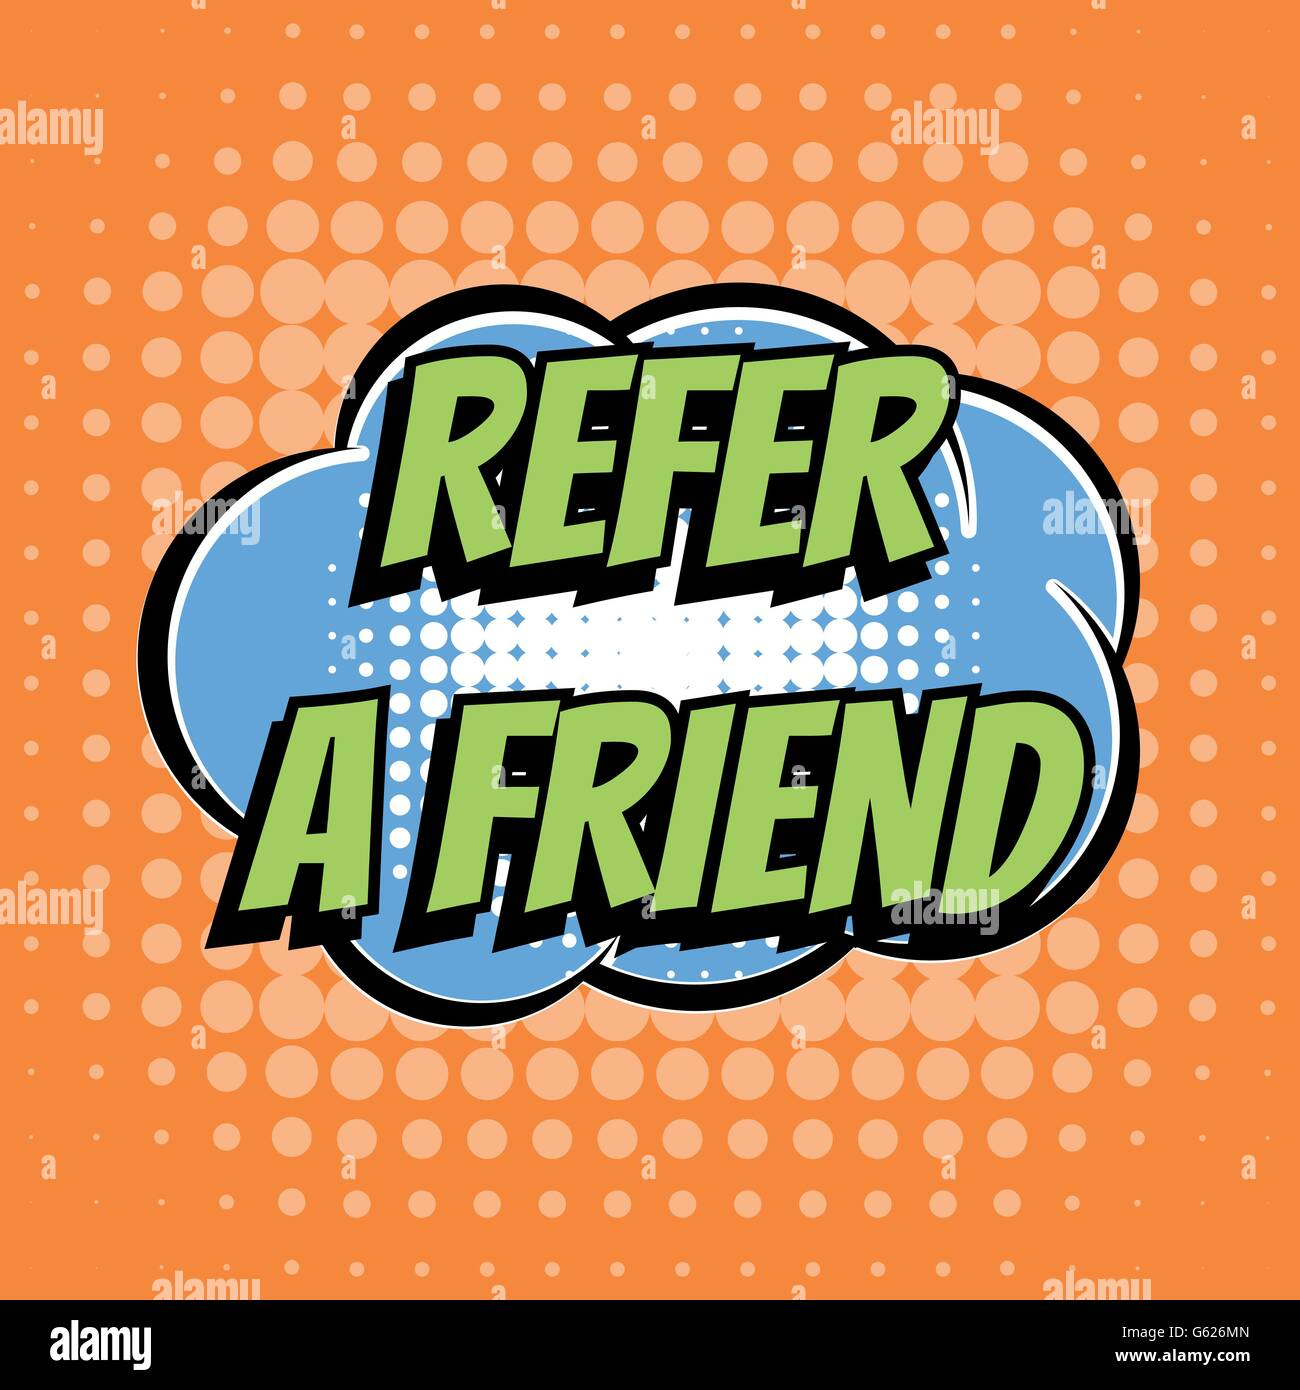 Refer a friend comic book bubble text retro style - Stock Image